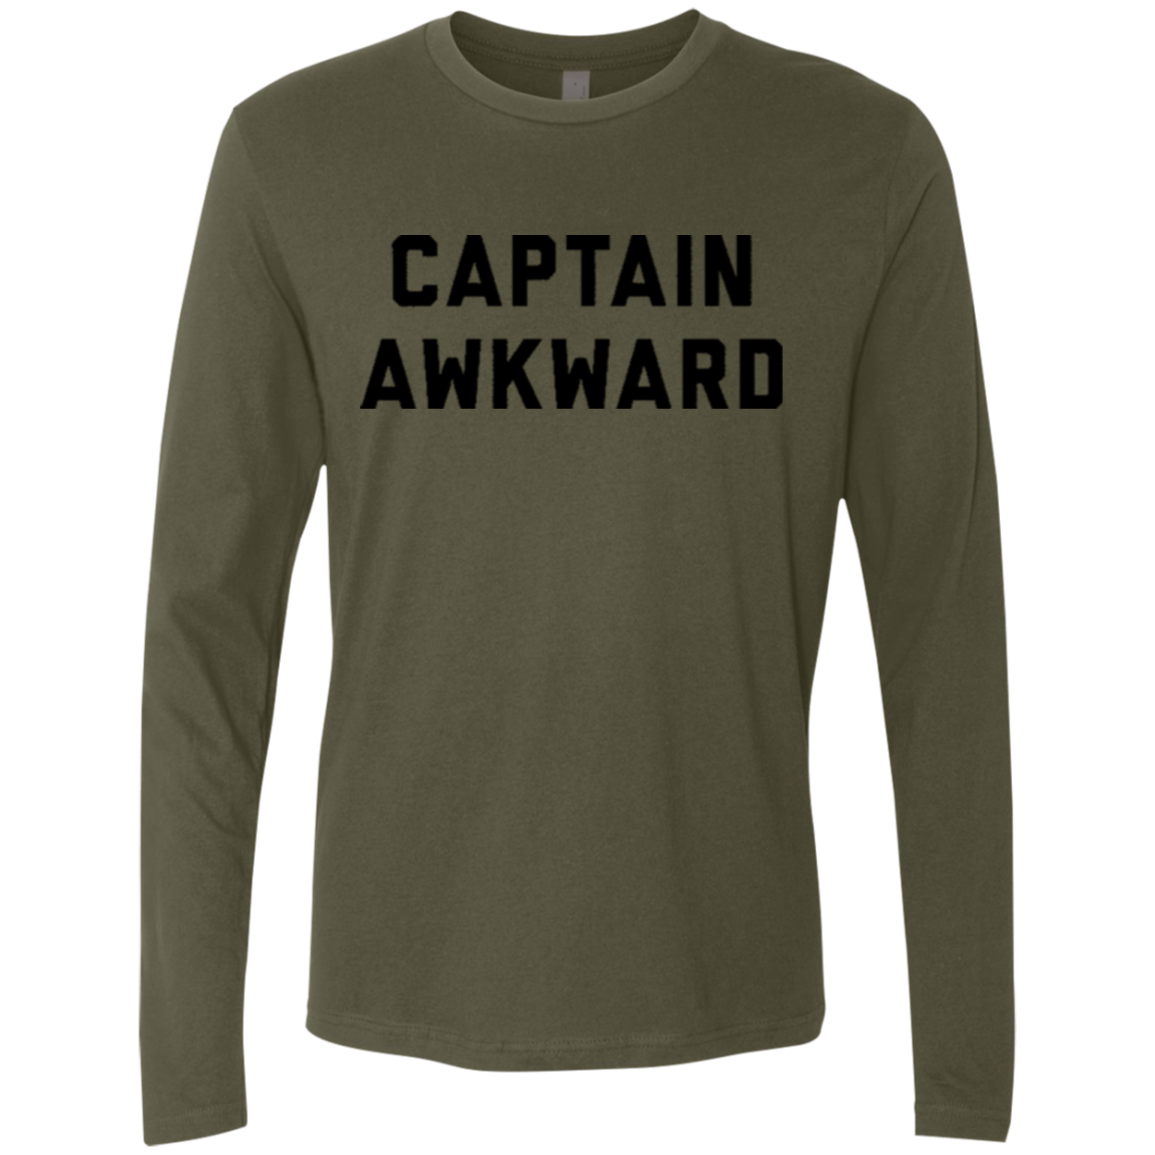 Captain Awkward Men's Long Sleeve Tee - Trendy Tees